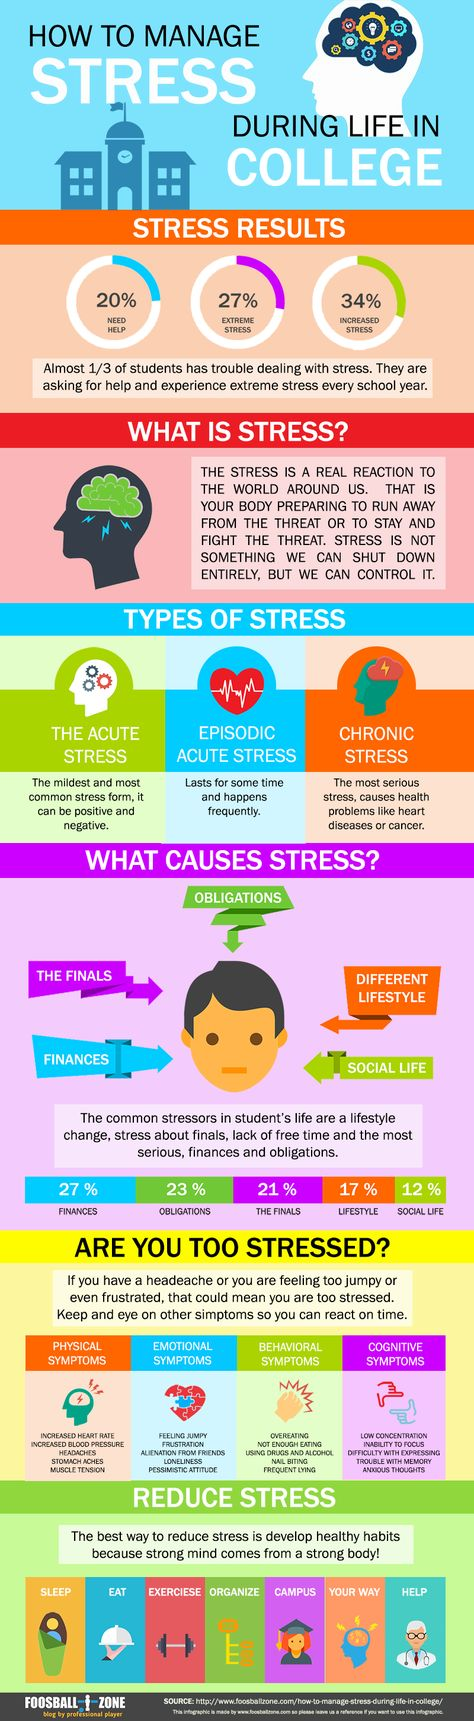 How To Manage Stress During Life In College?